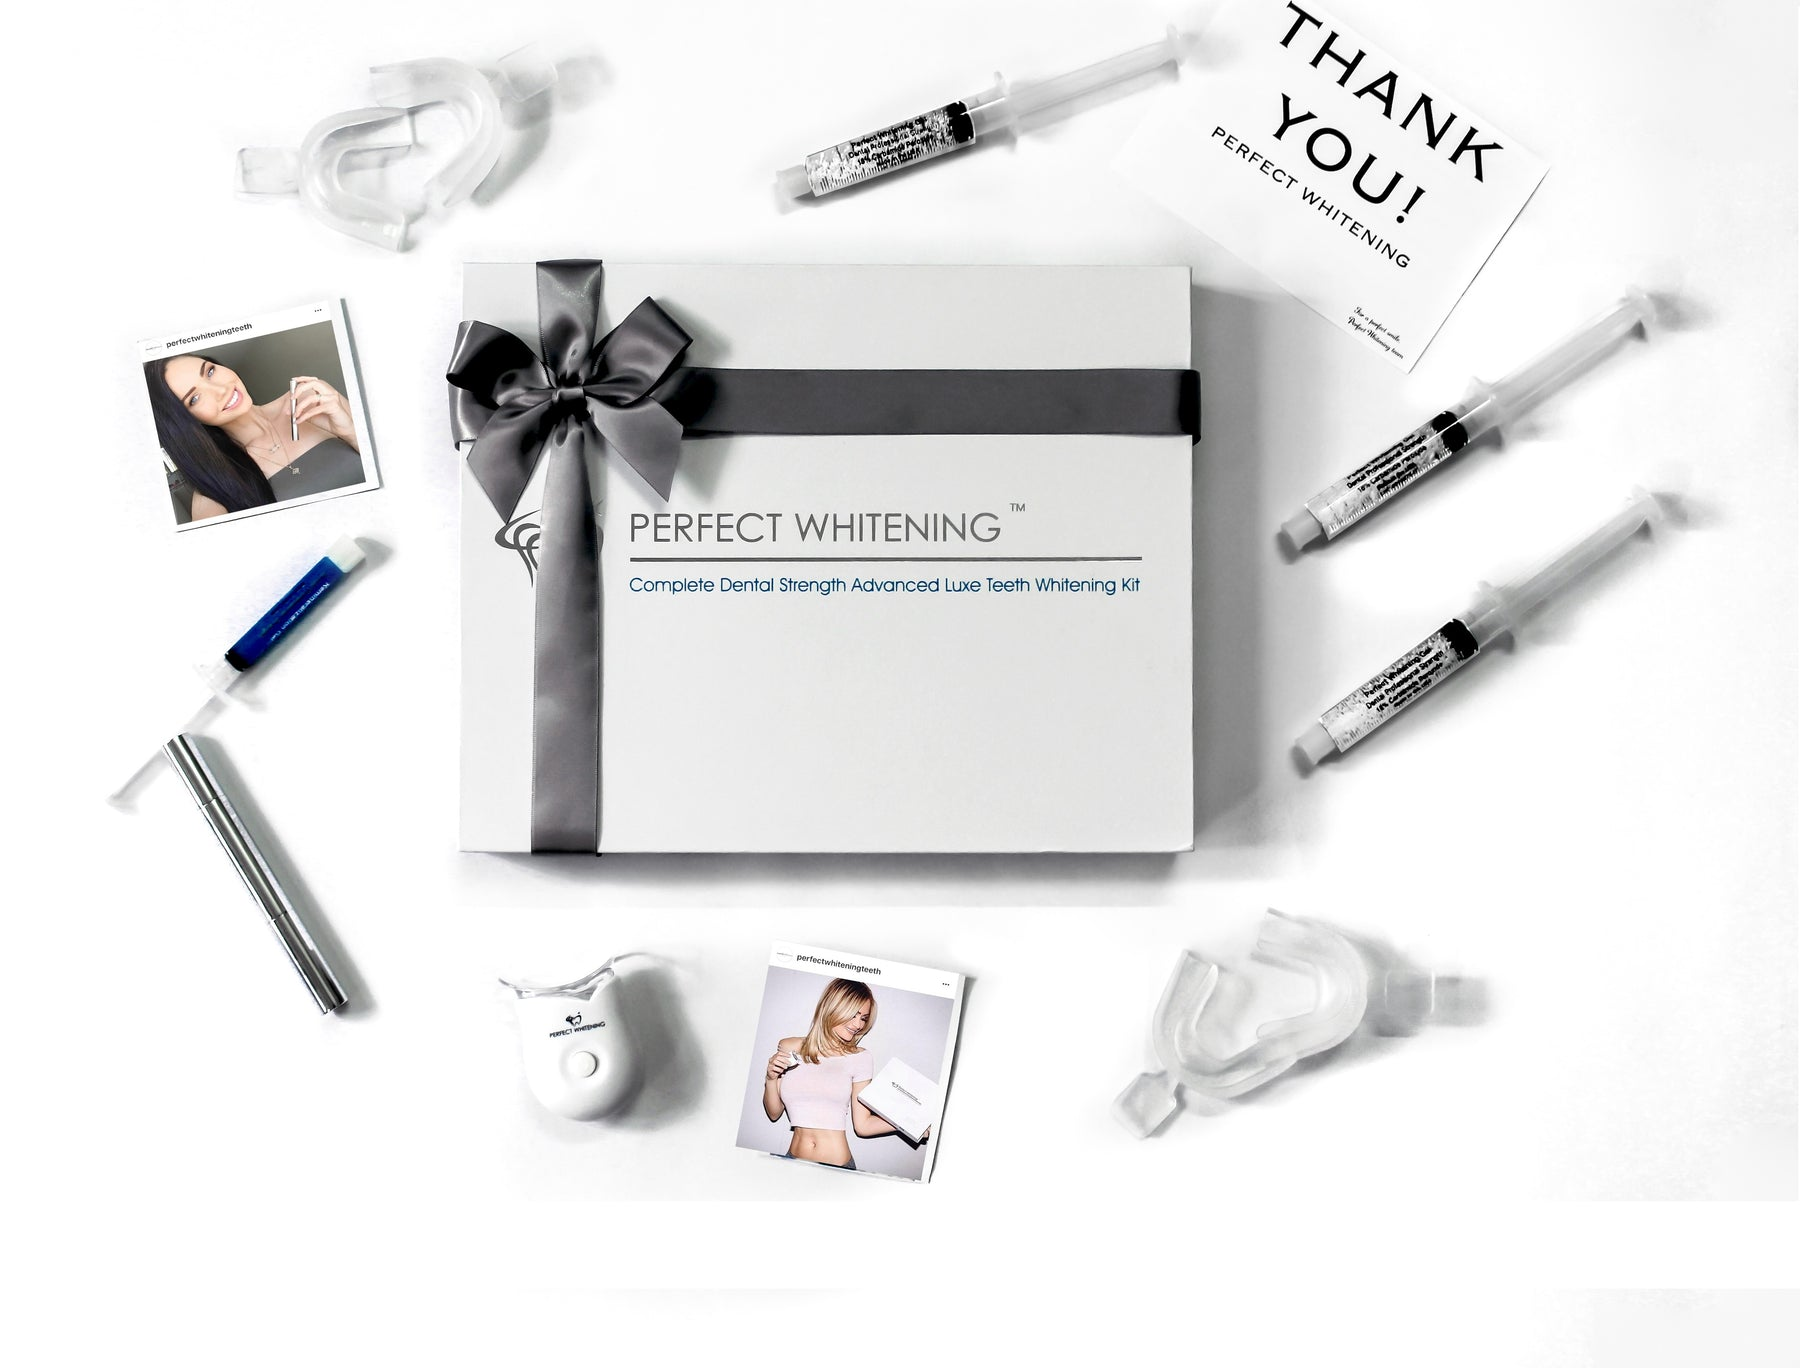 Best Teeth Whitening Kit in Australia